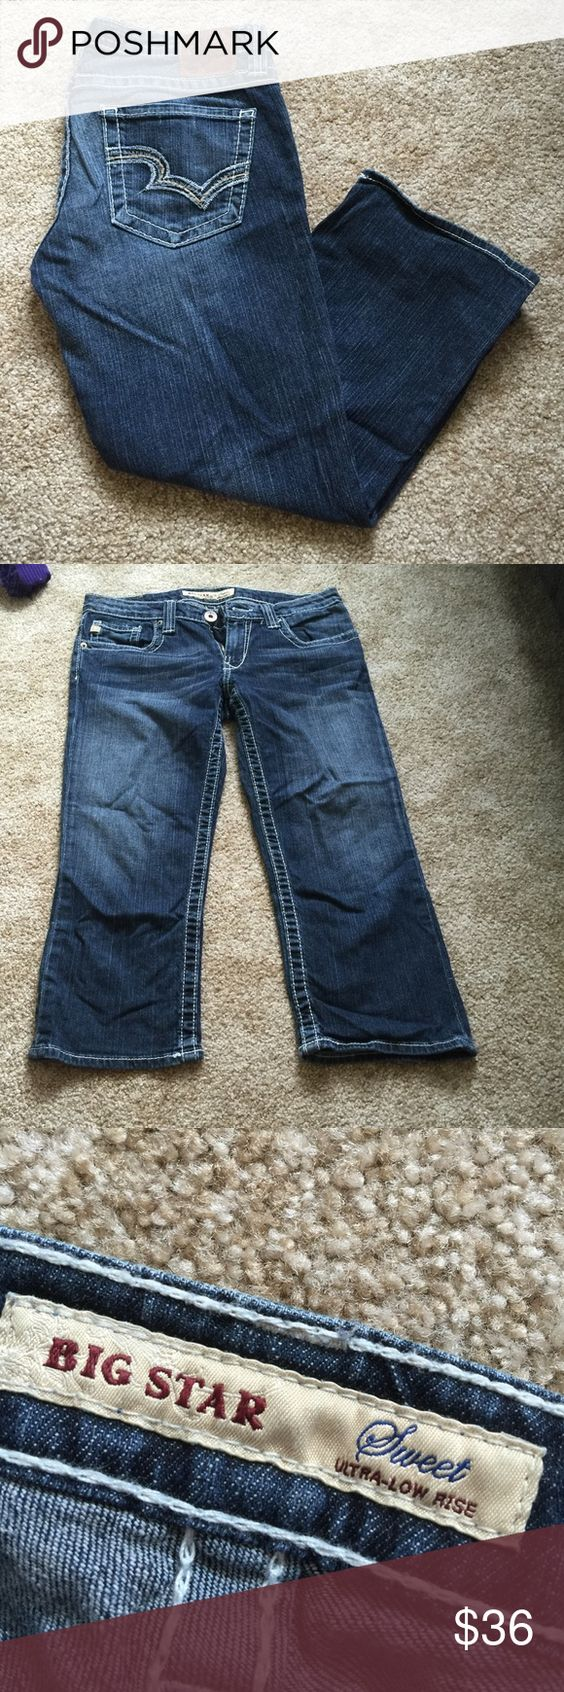 Big Star Capris Sweet ultra-low rise. Size 29. In good used condition! Make me an offer  Big Star Jeans Ankle & Cropped